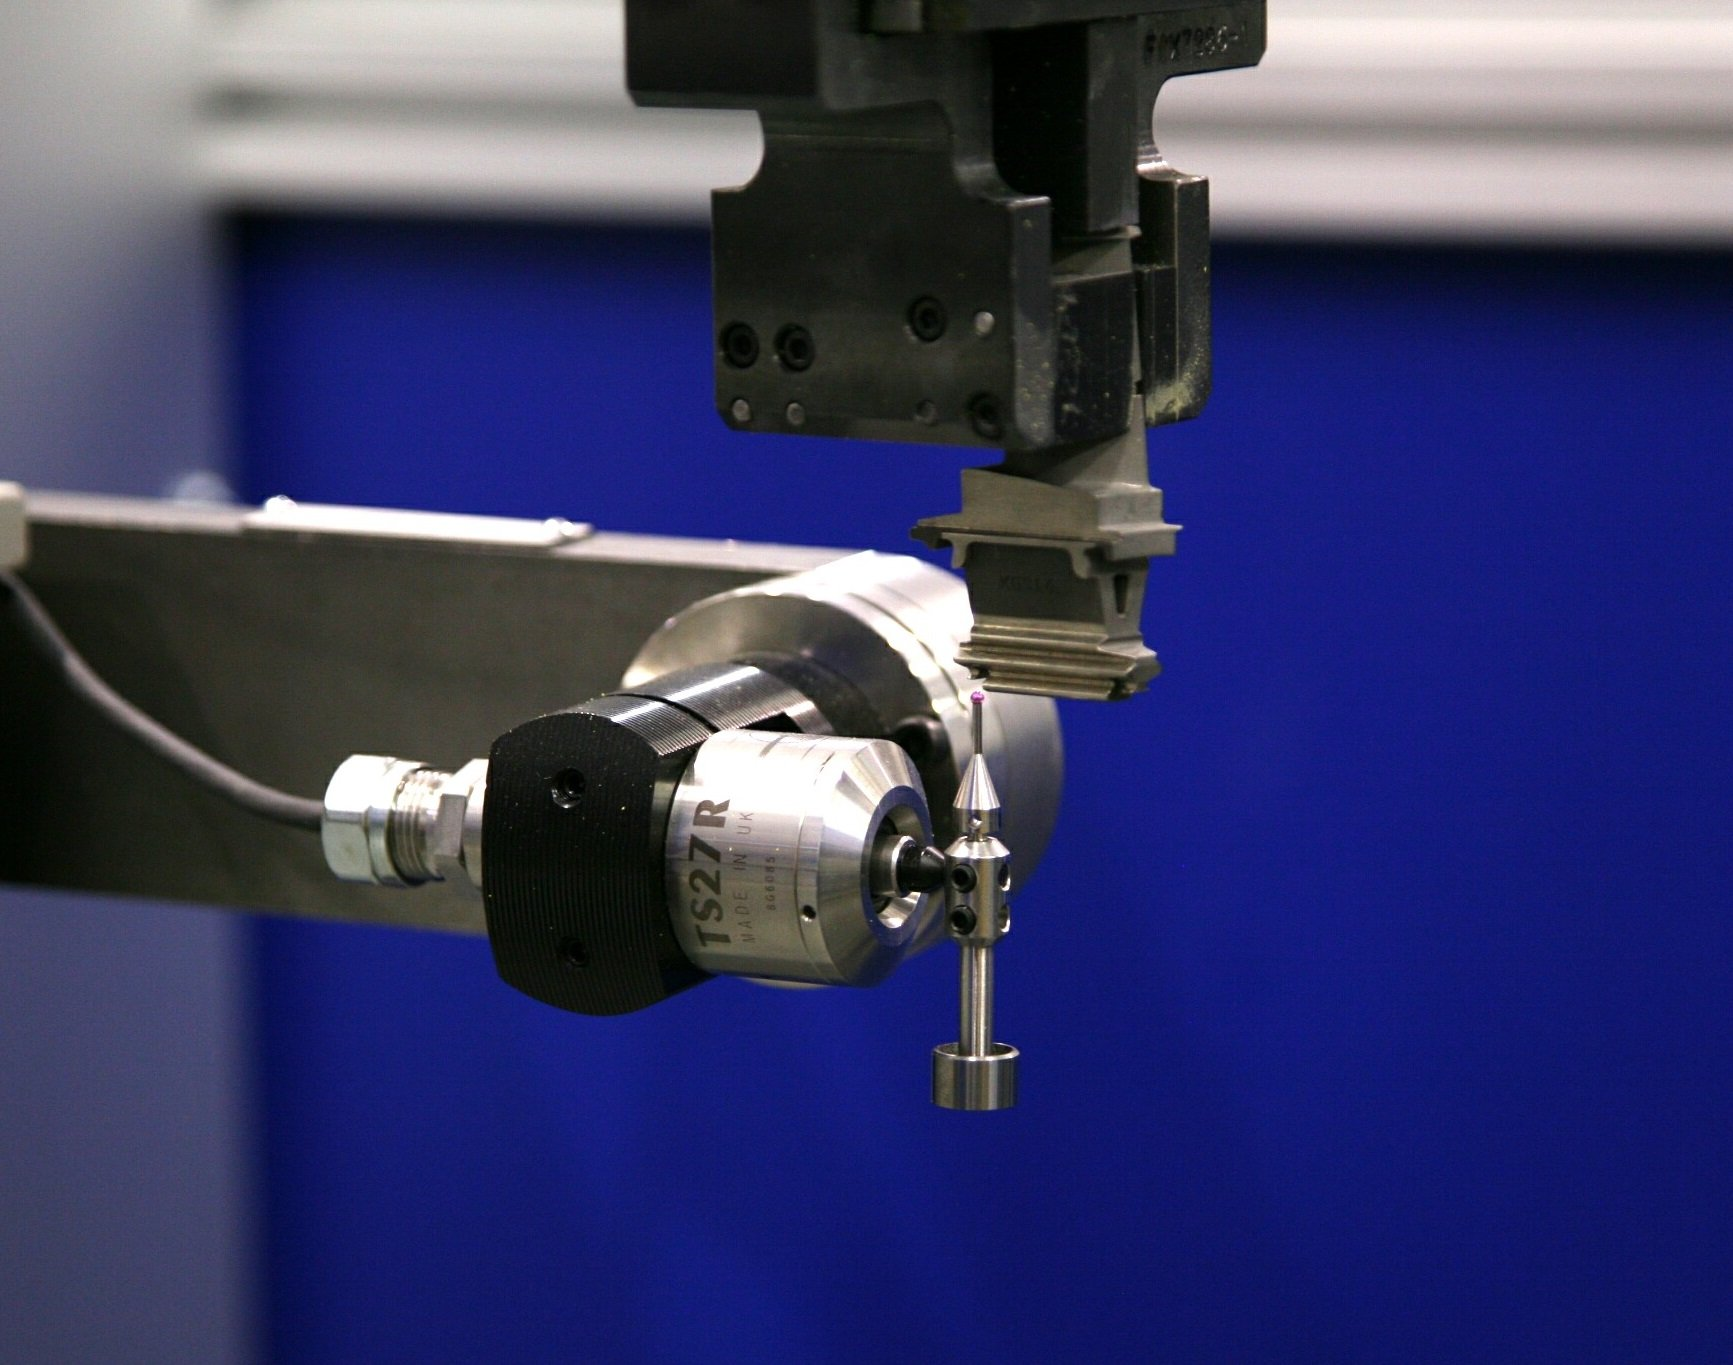 Acme Robot Measuring a Part with a Needle Probe